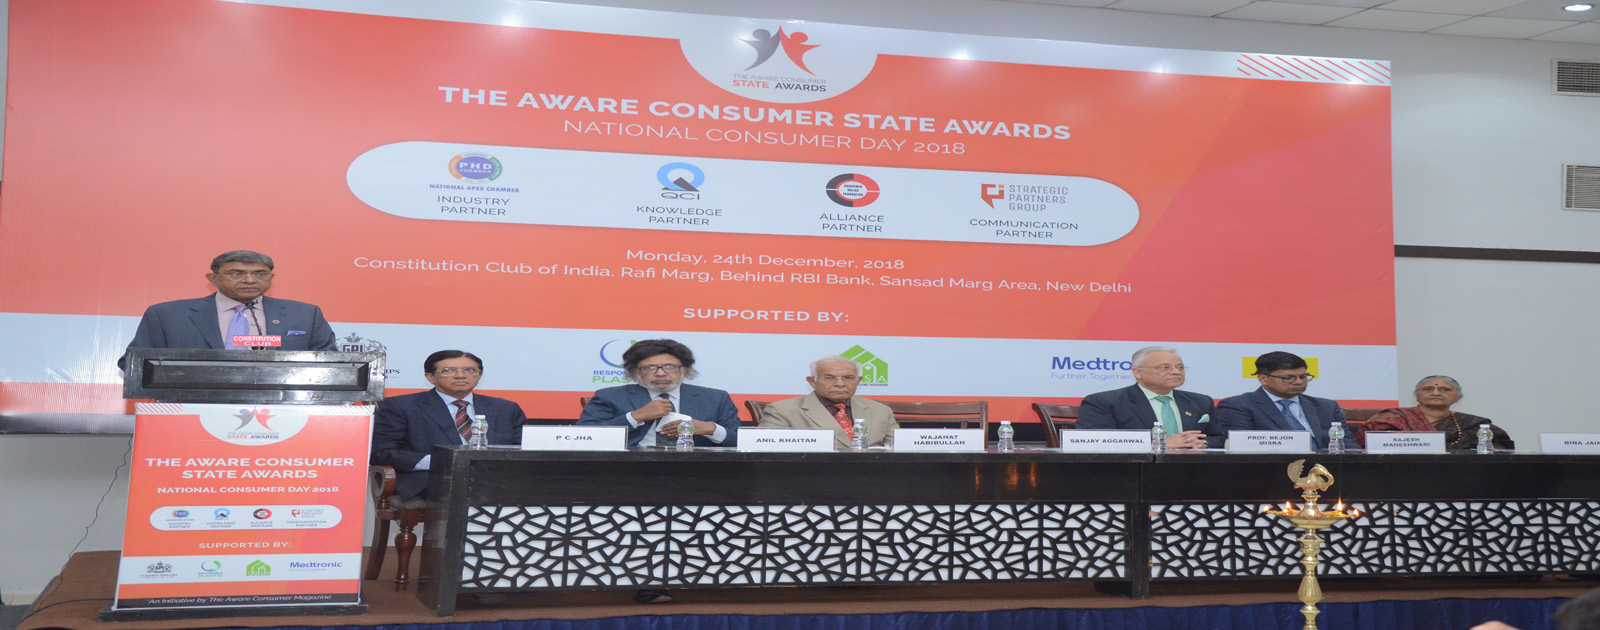 The Aware Consumer State Awards on National Consumer Day